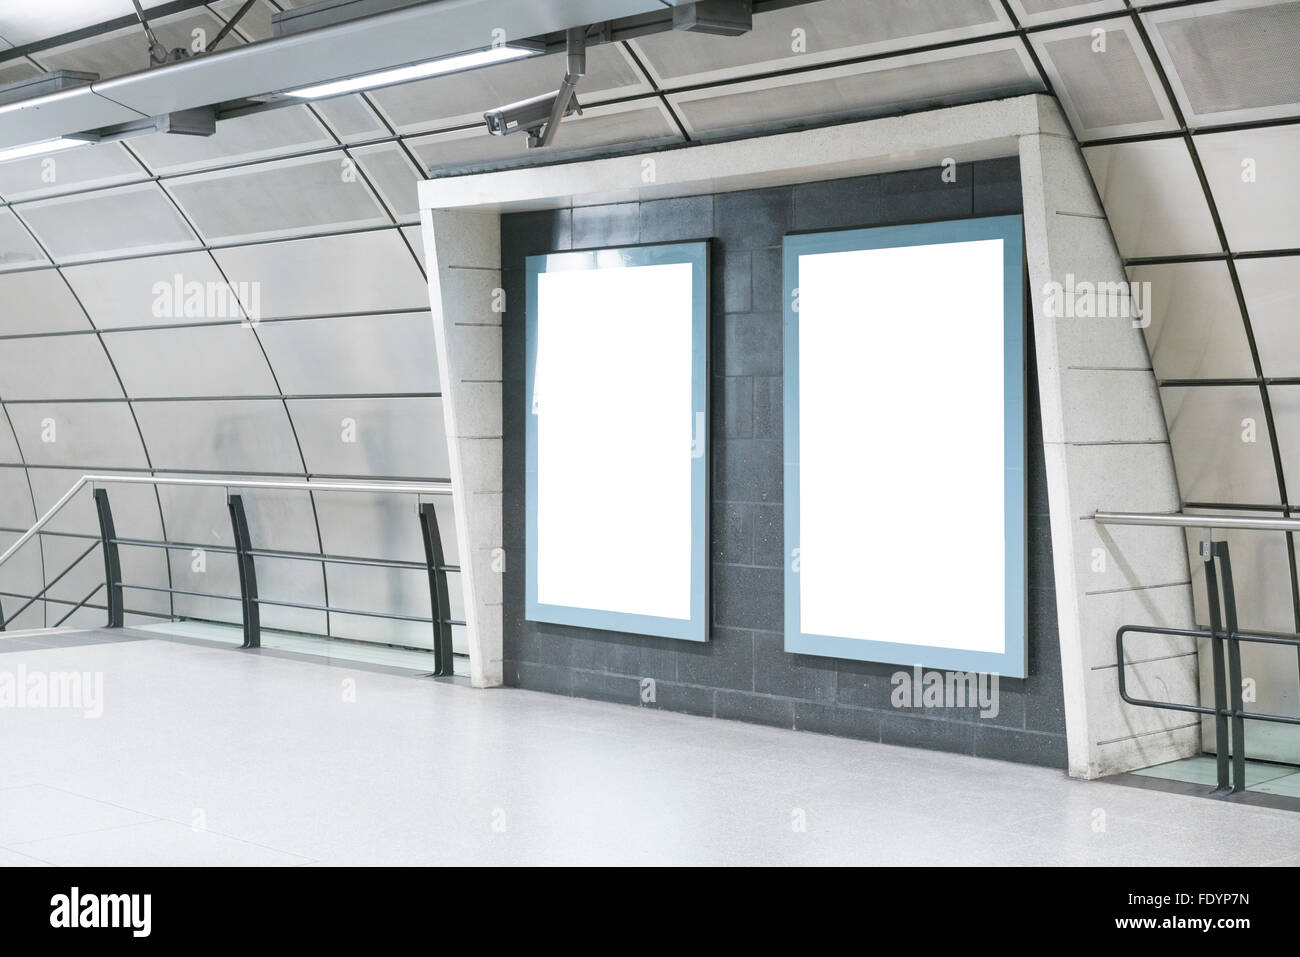 BLANK TEMPLATE BILLBOARD POSTER ON LONDON UNDERGROUND METRO, LONDON, UNITED KINGDOM, HIGH QUALITY Stock Photo